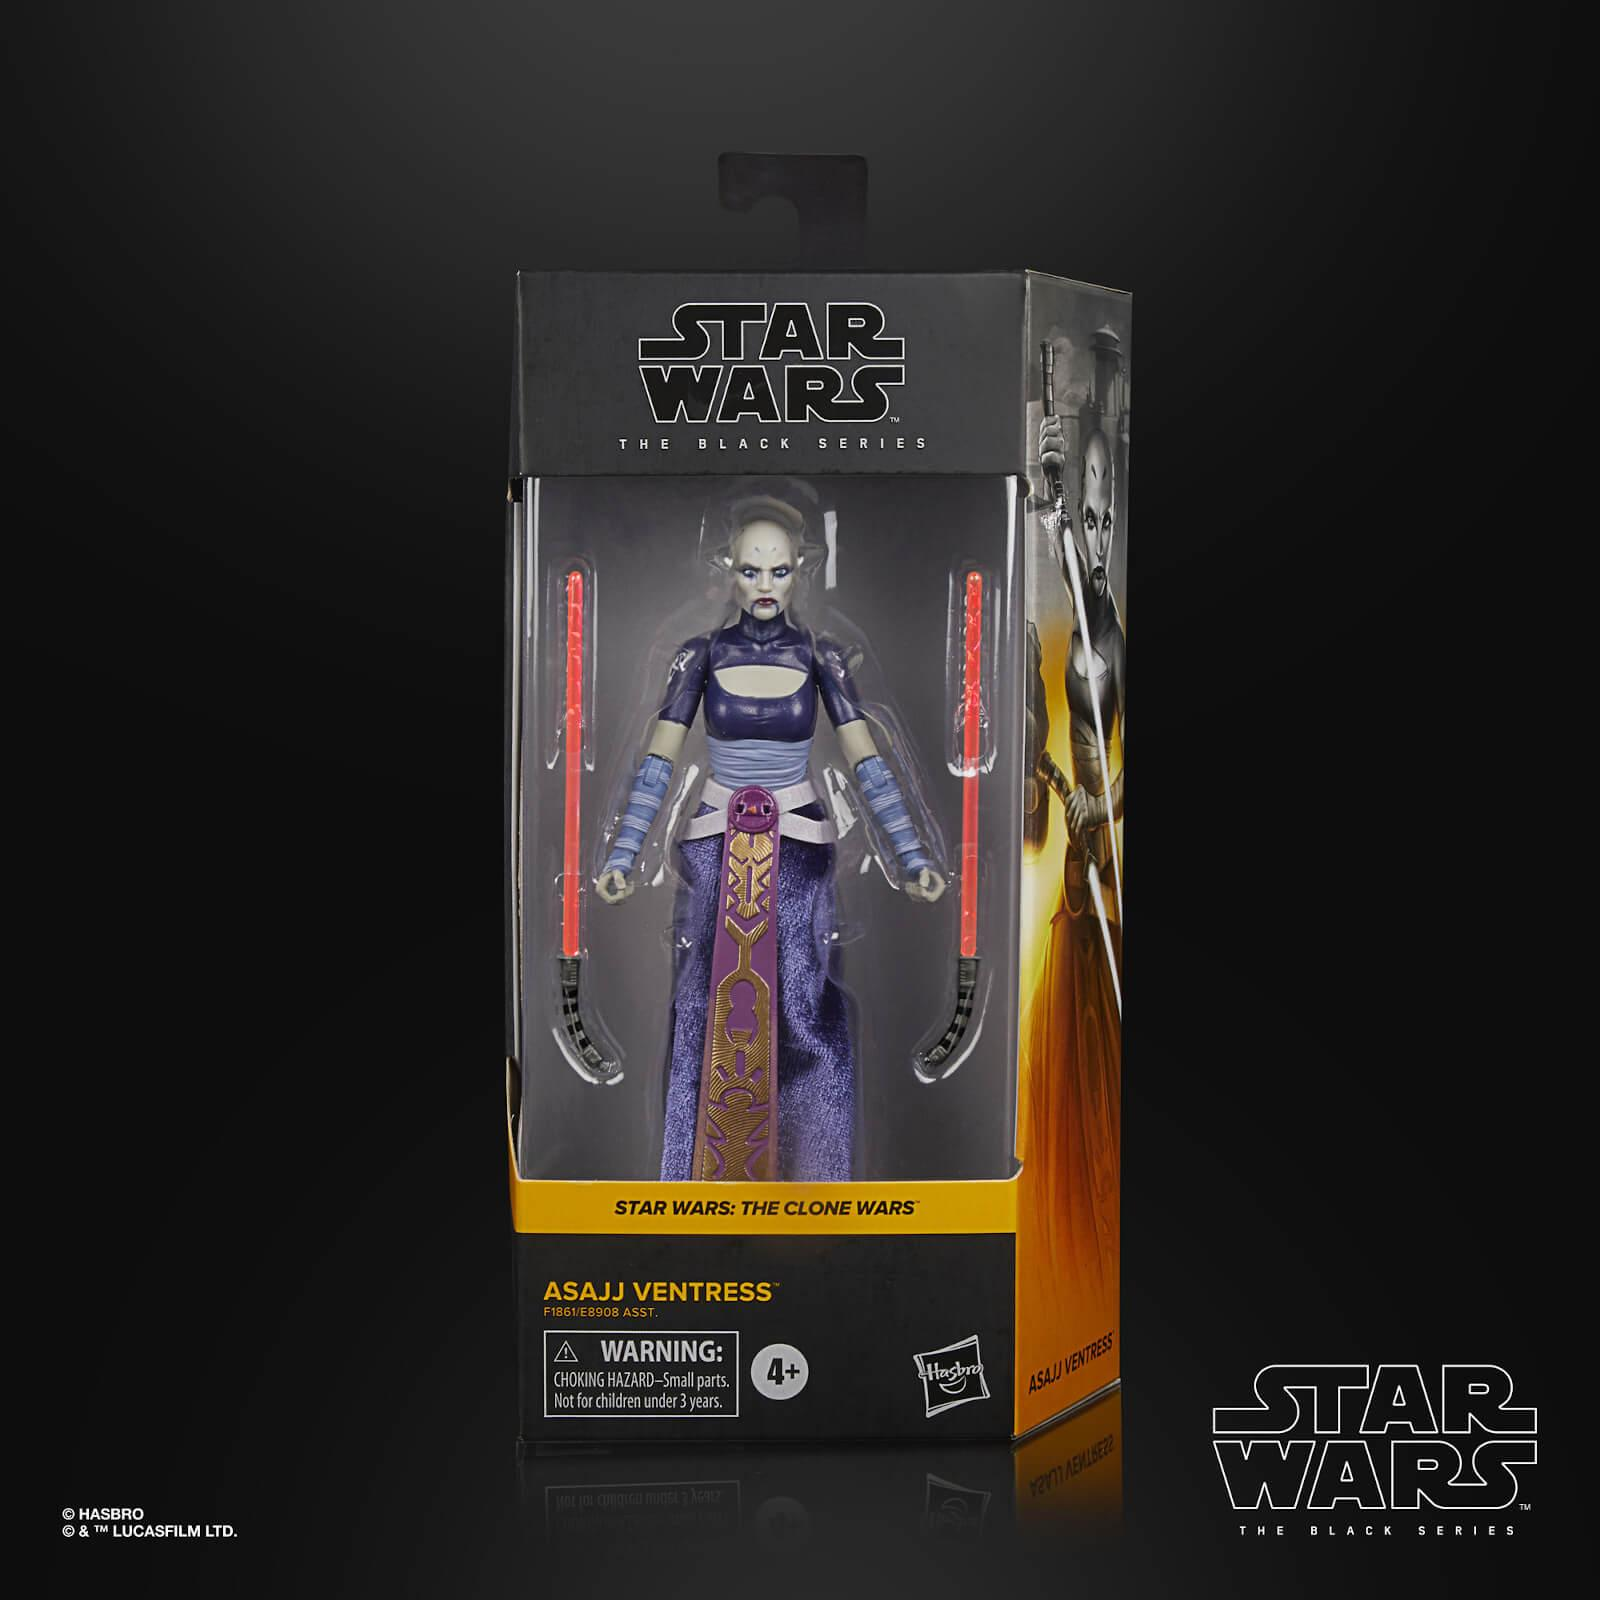 Star wars the black series asajj ventress 15cm